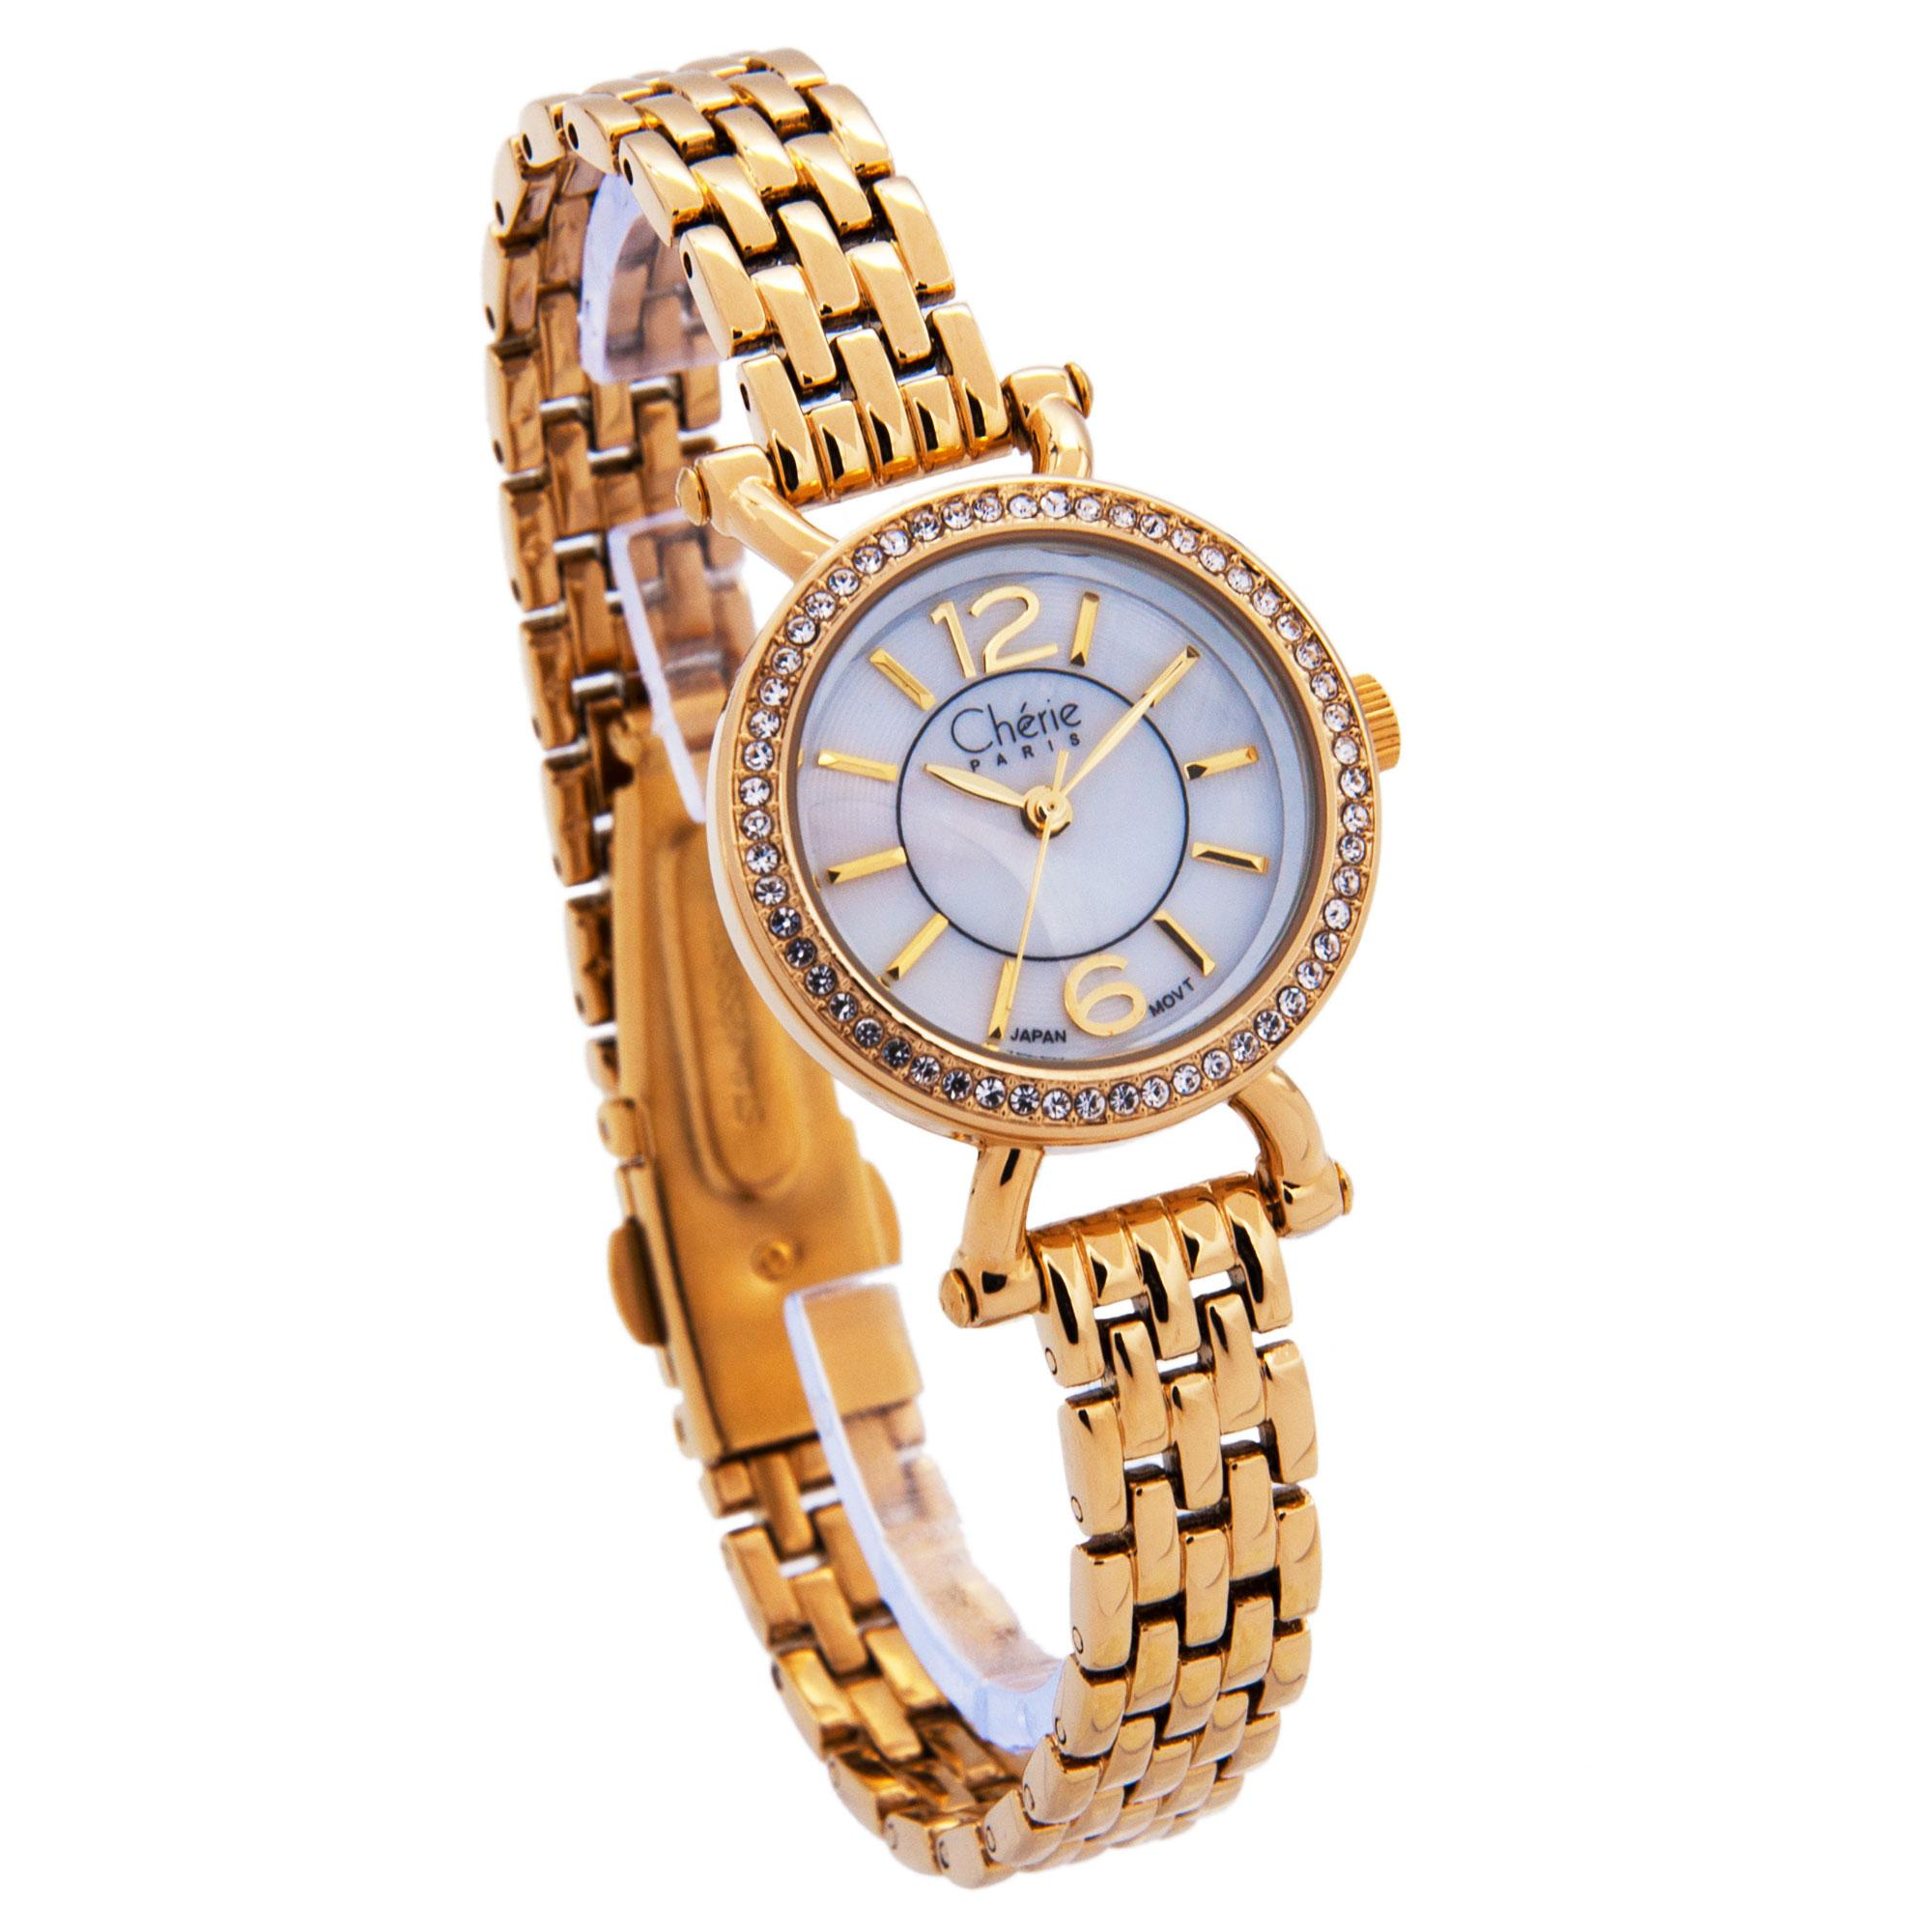 Cherie Paris Trina Women Metal Strap Analog Watch CHR-1743 (Fashion Collection)